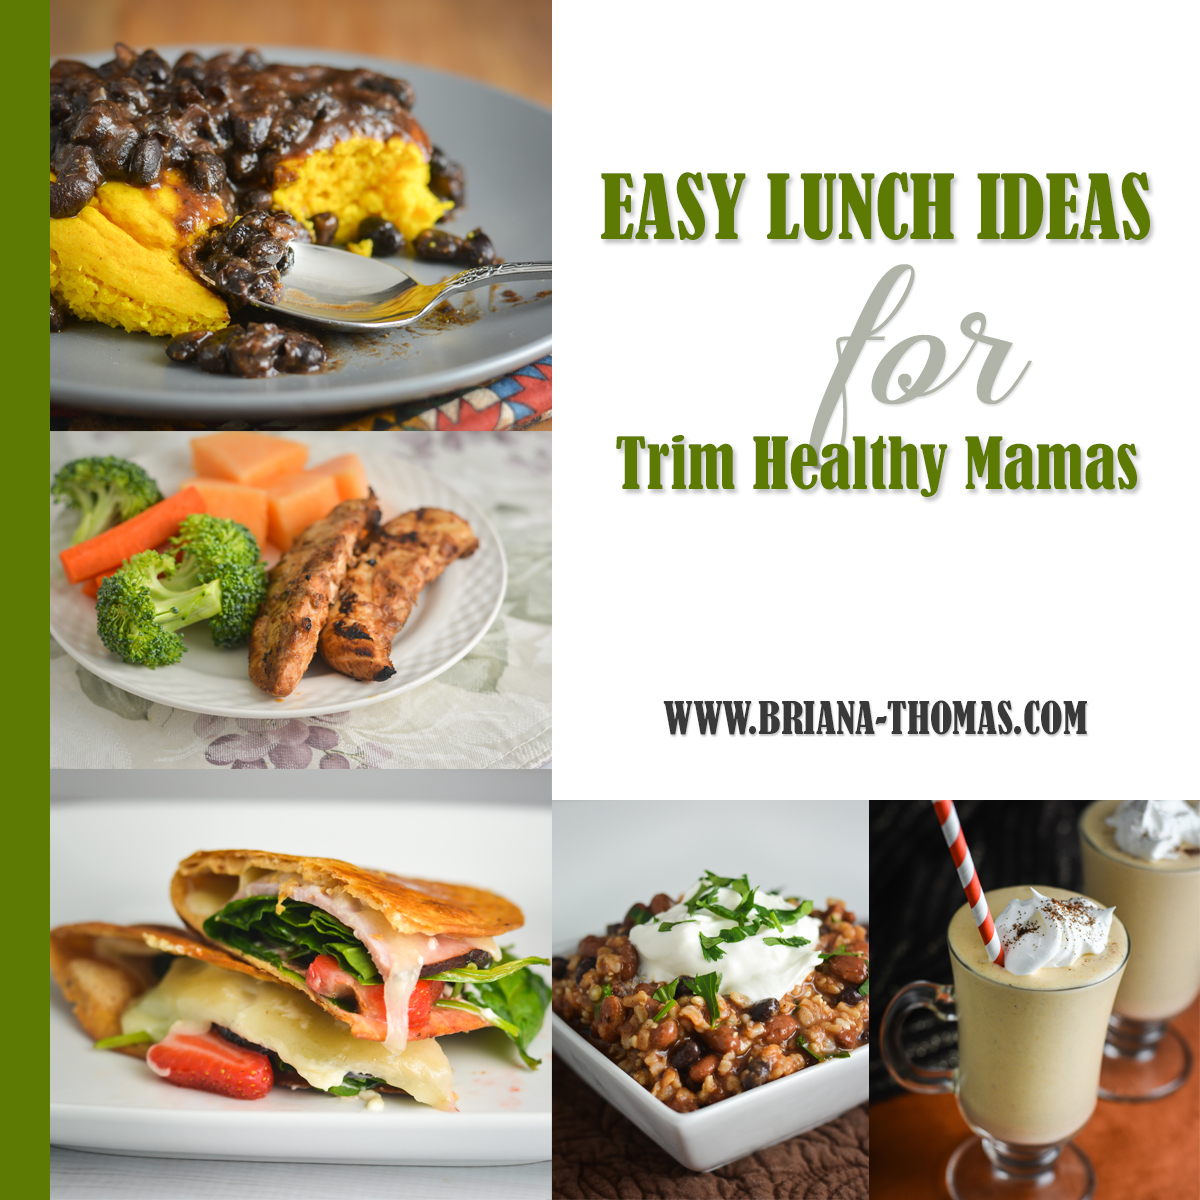 Check out this post for a huge list of easy lunch ideas for Trim Healthy Mamas organized by fuel types! Low carb (S) and low fat (E) options